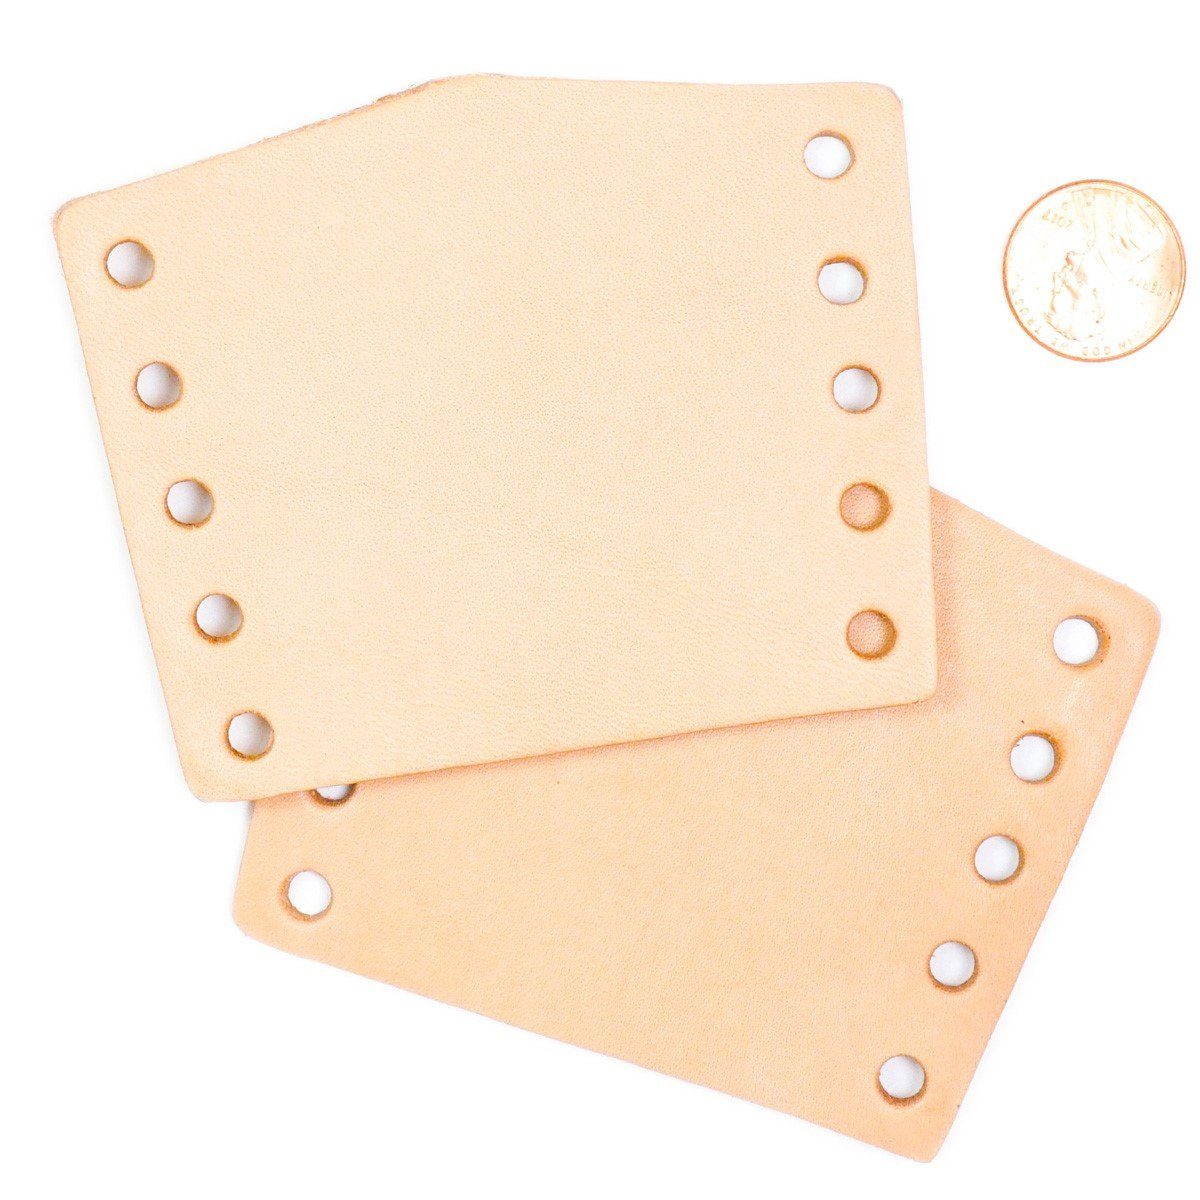 Springfield Leather Company 100 Pack of Leather Neckerchief Slide 3-1/2''x2-3/4''